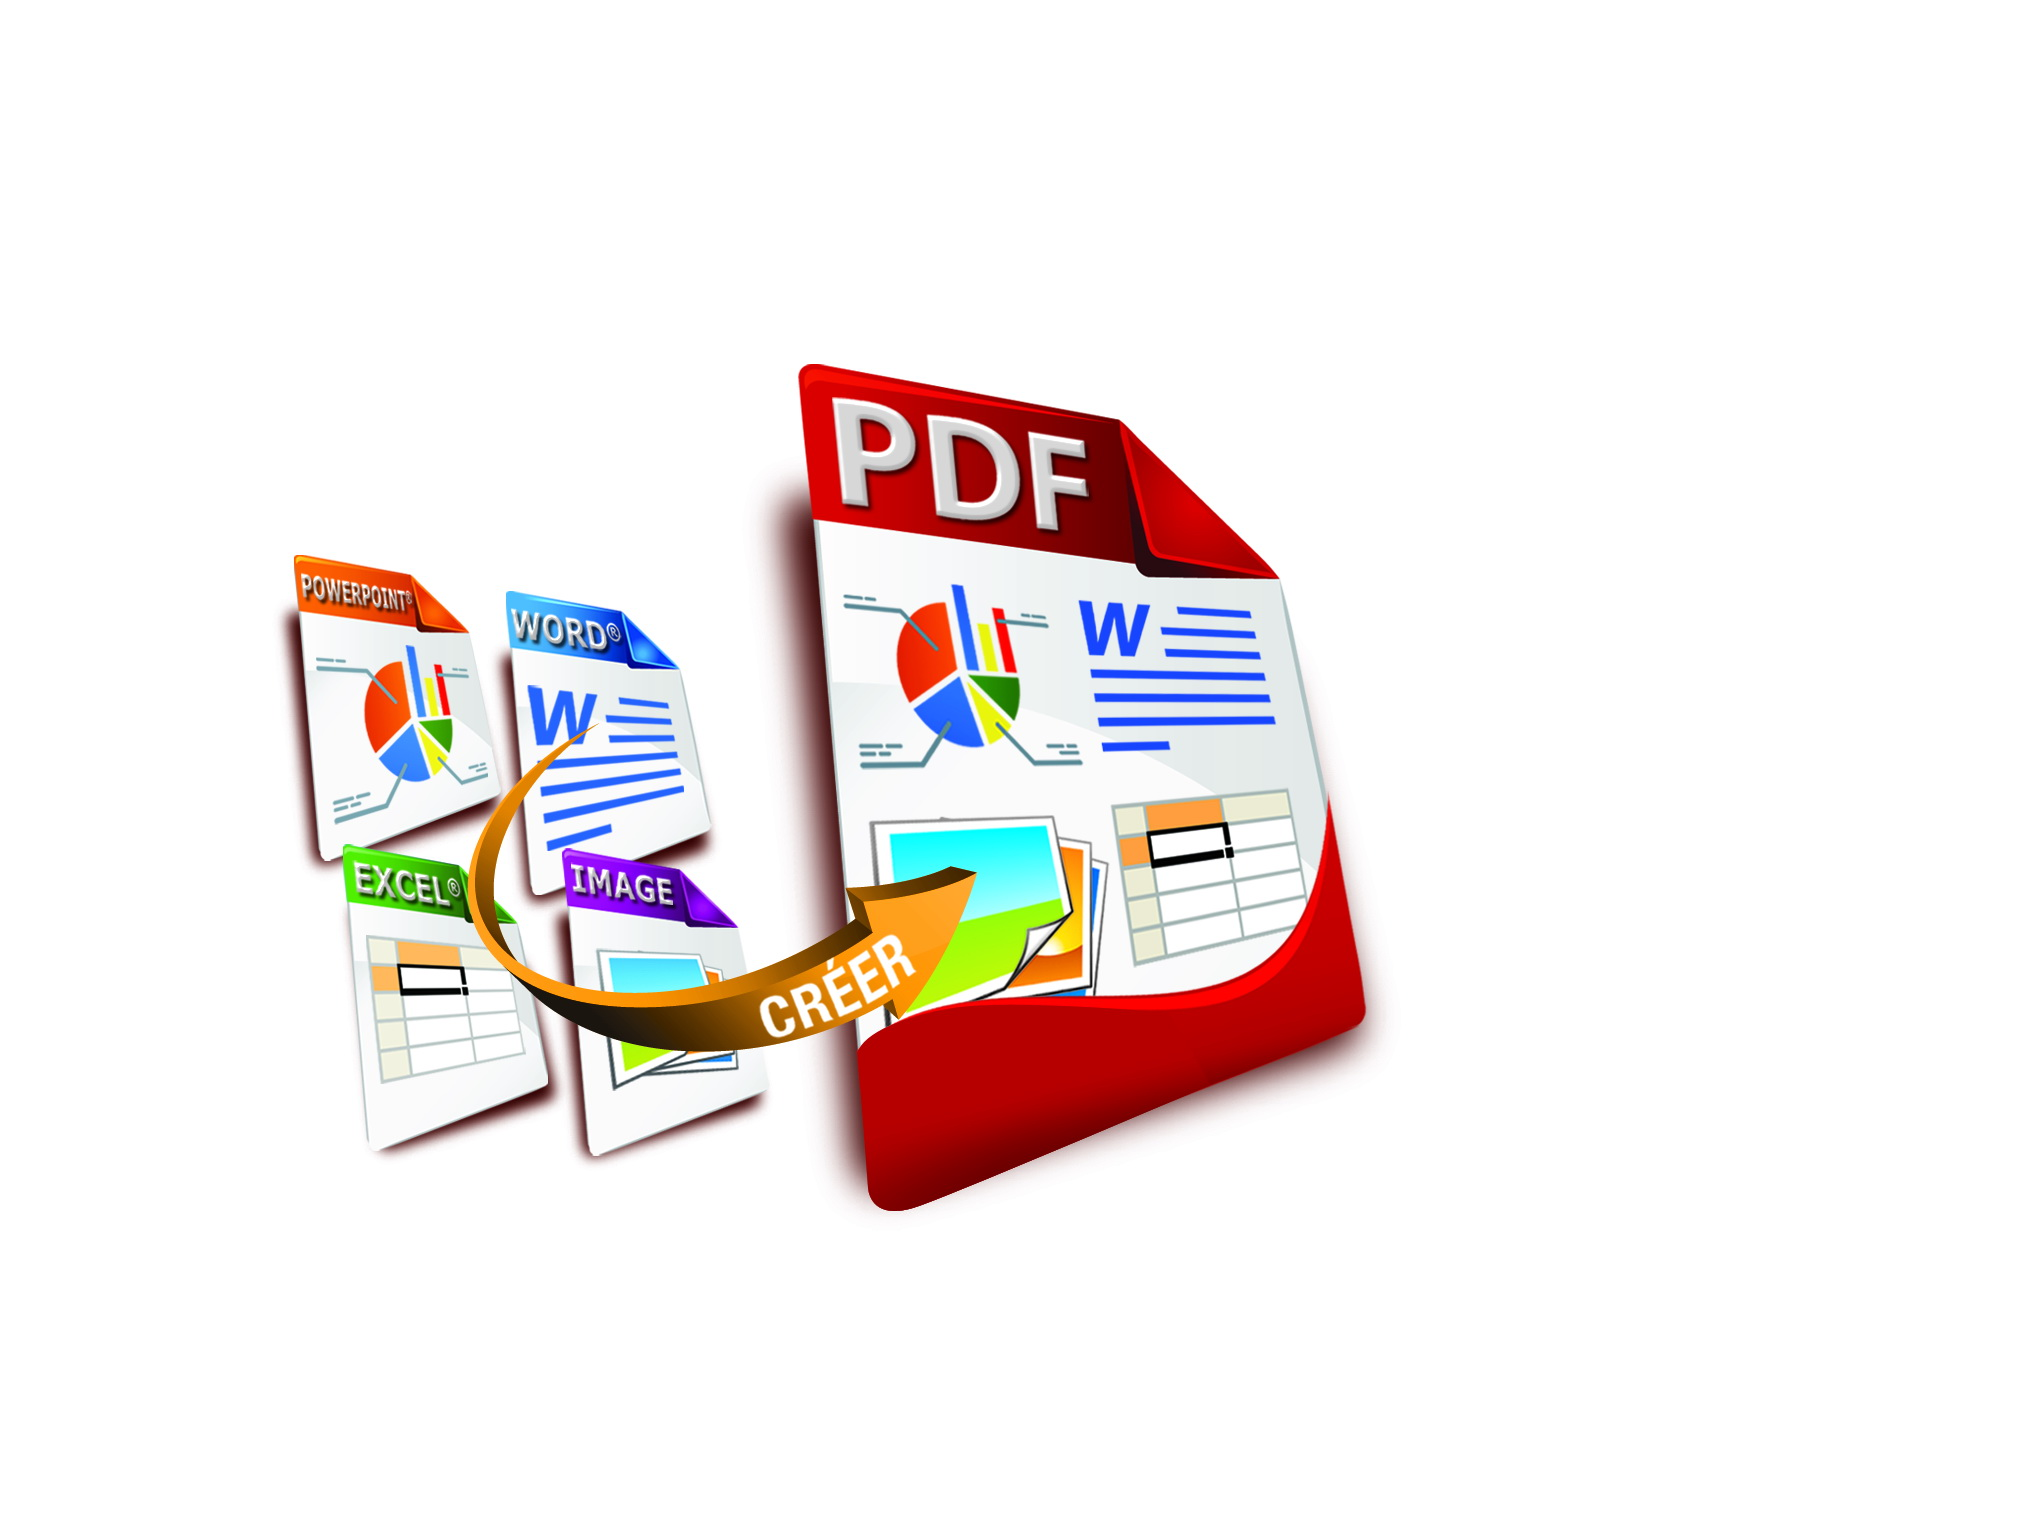 download transformer un fichier word en pdf avec pdf